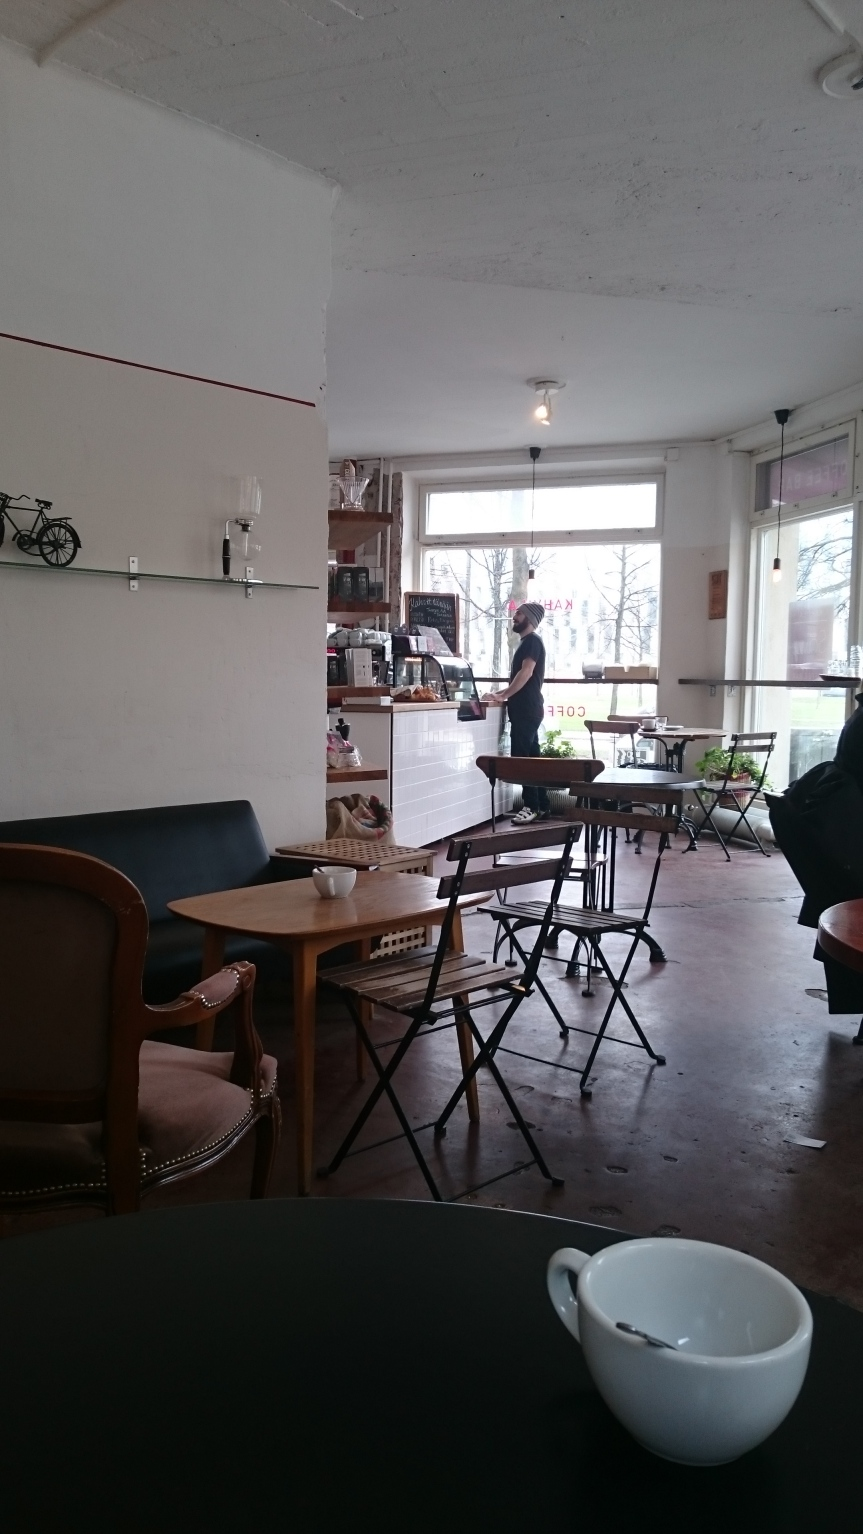 View of the cafe